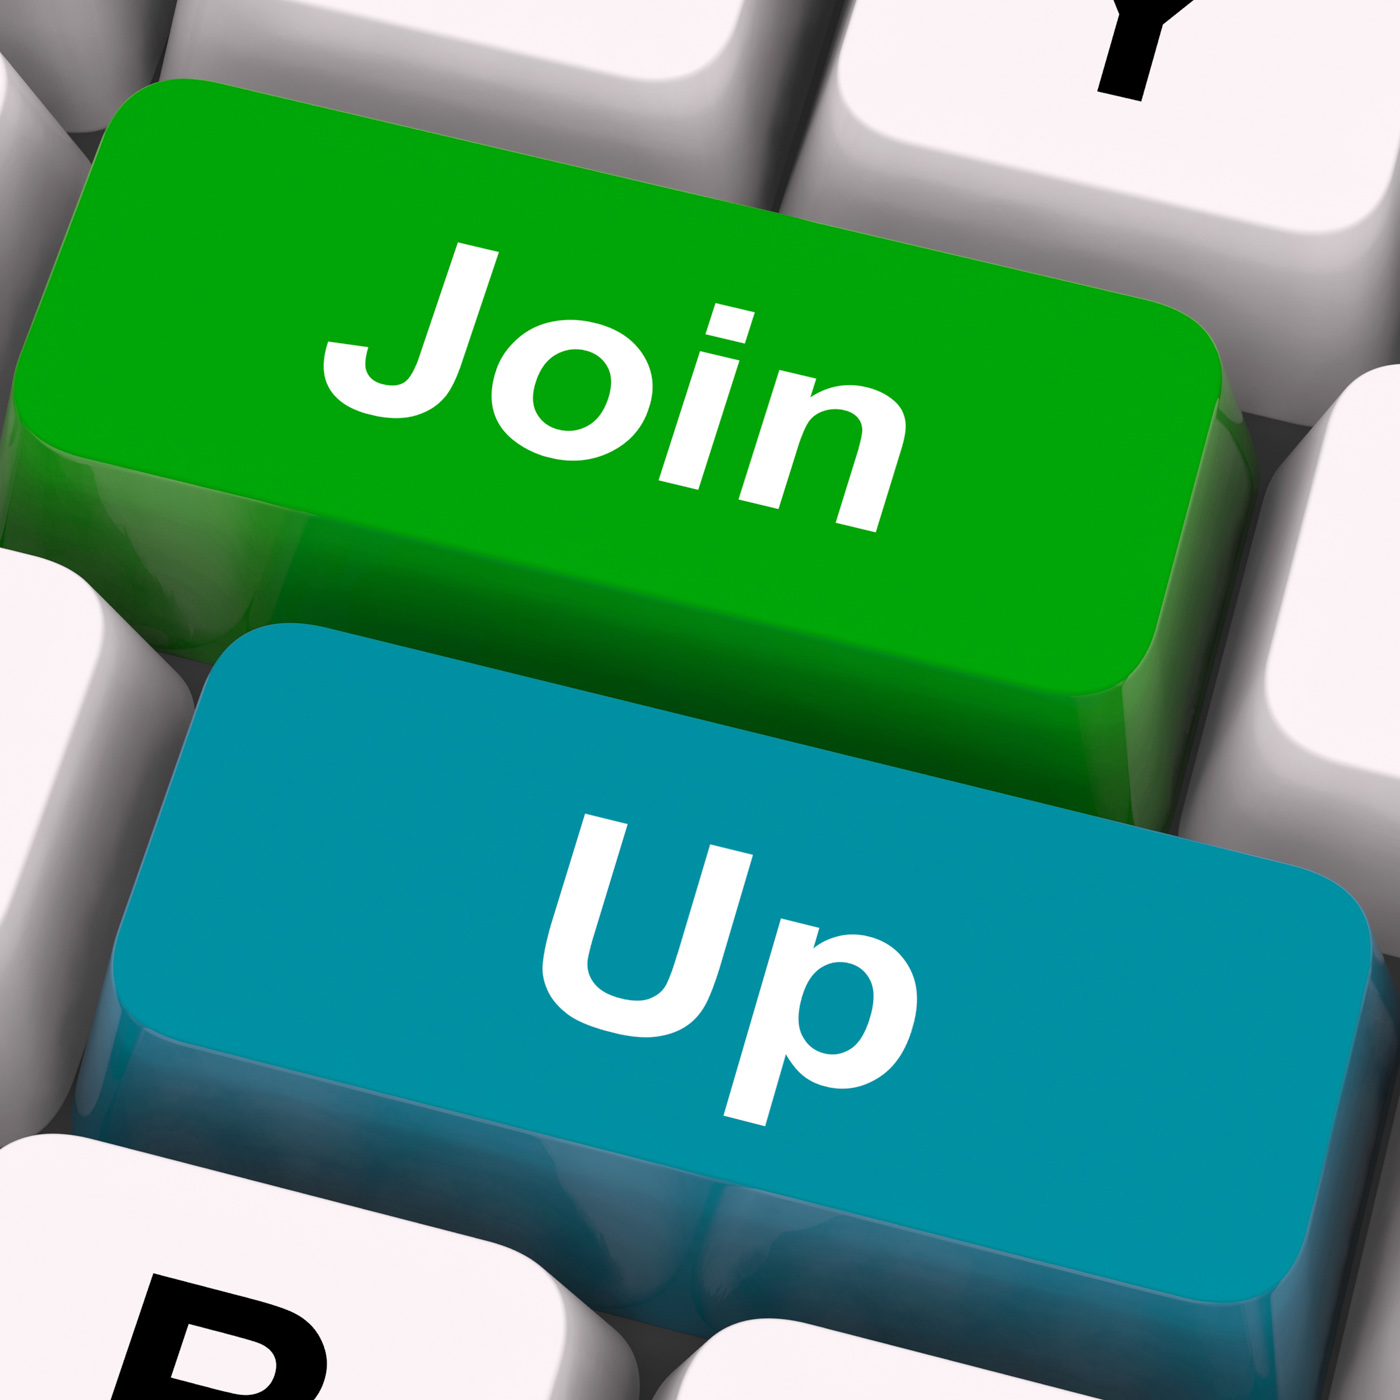 Join up keys show becoming a member or registering photo